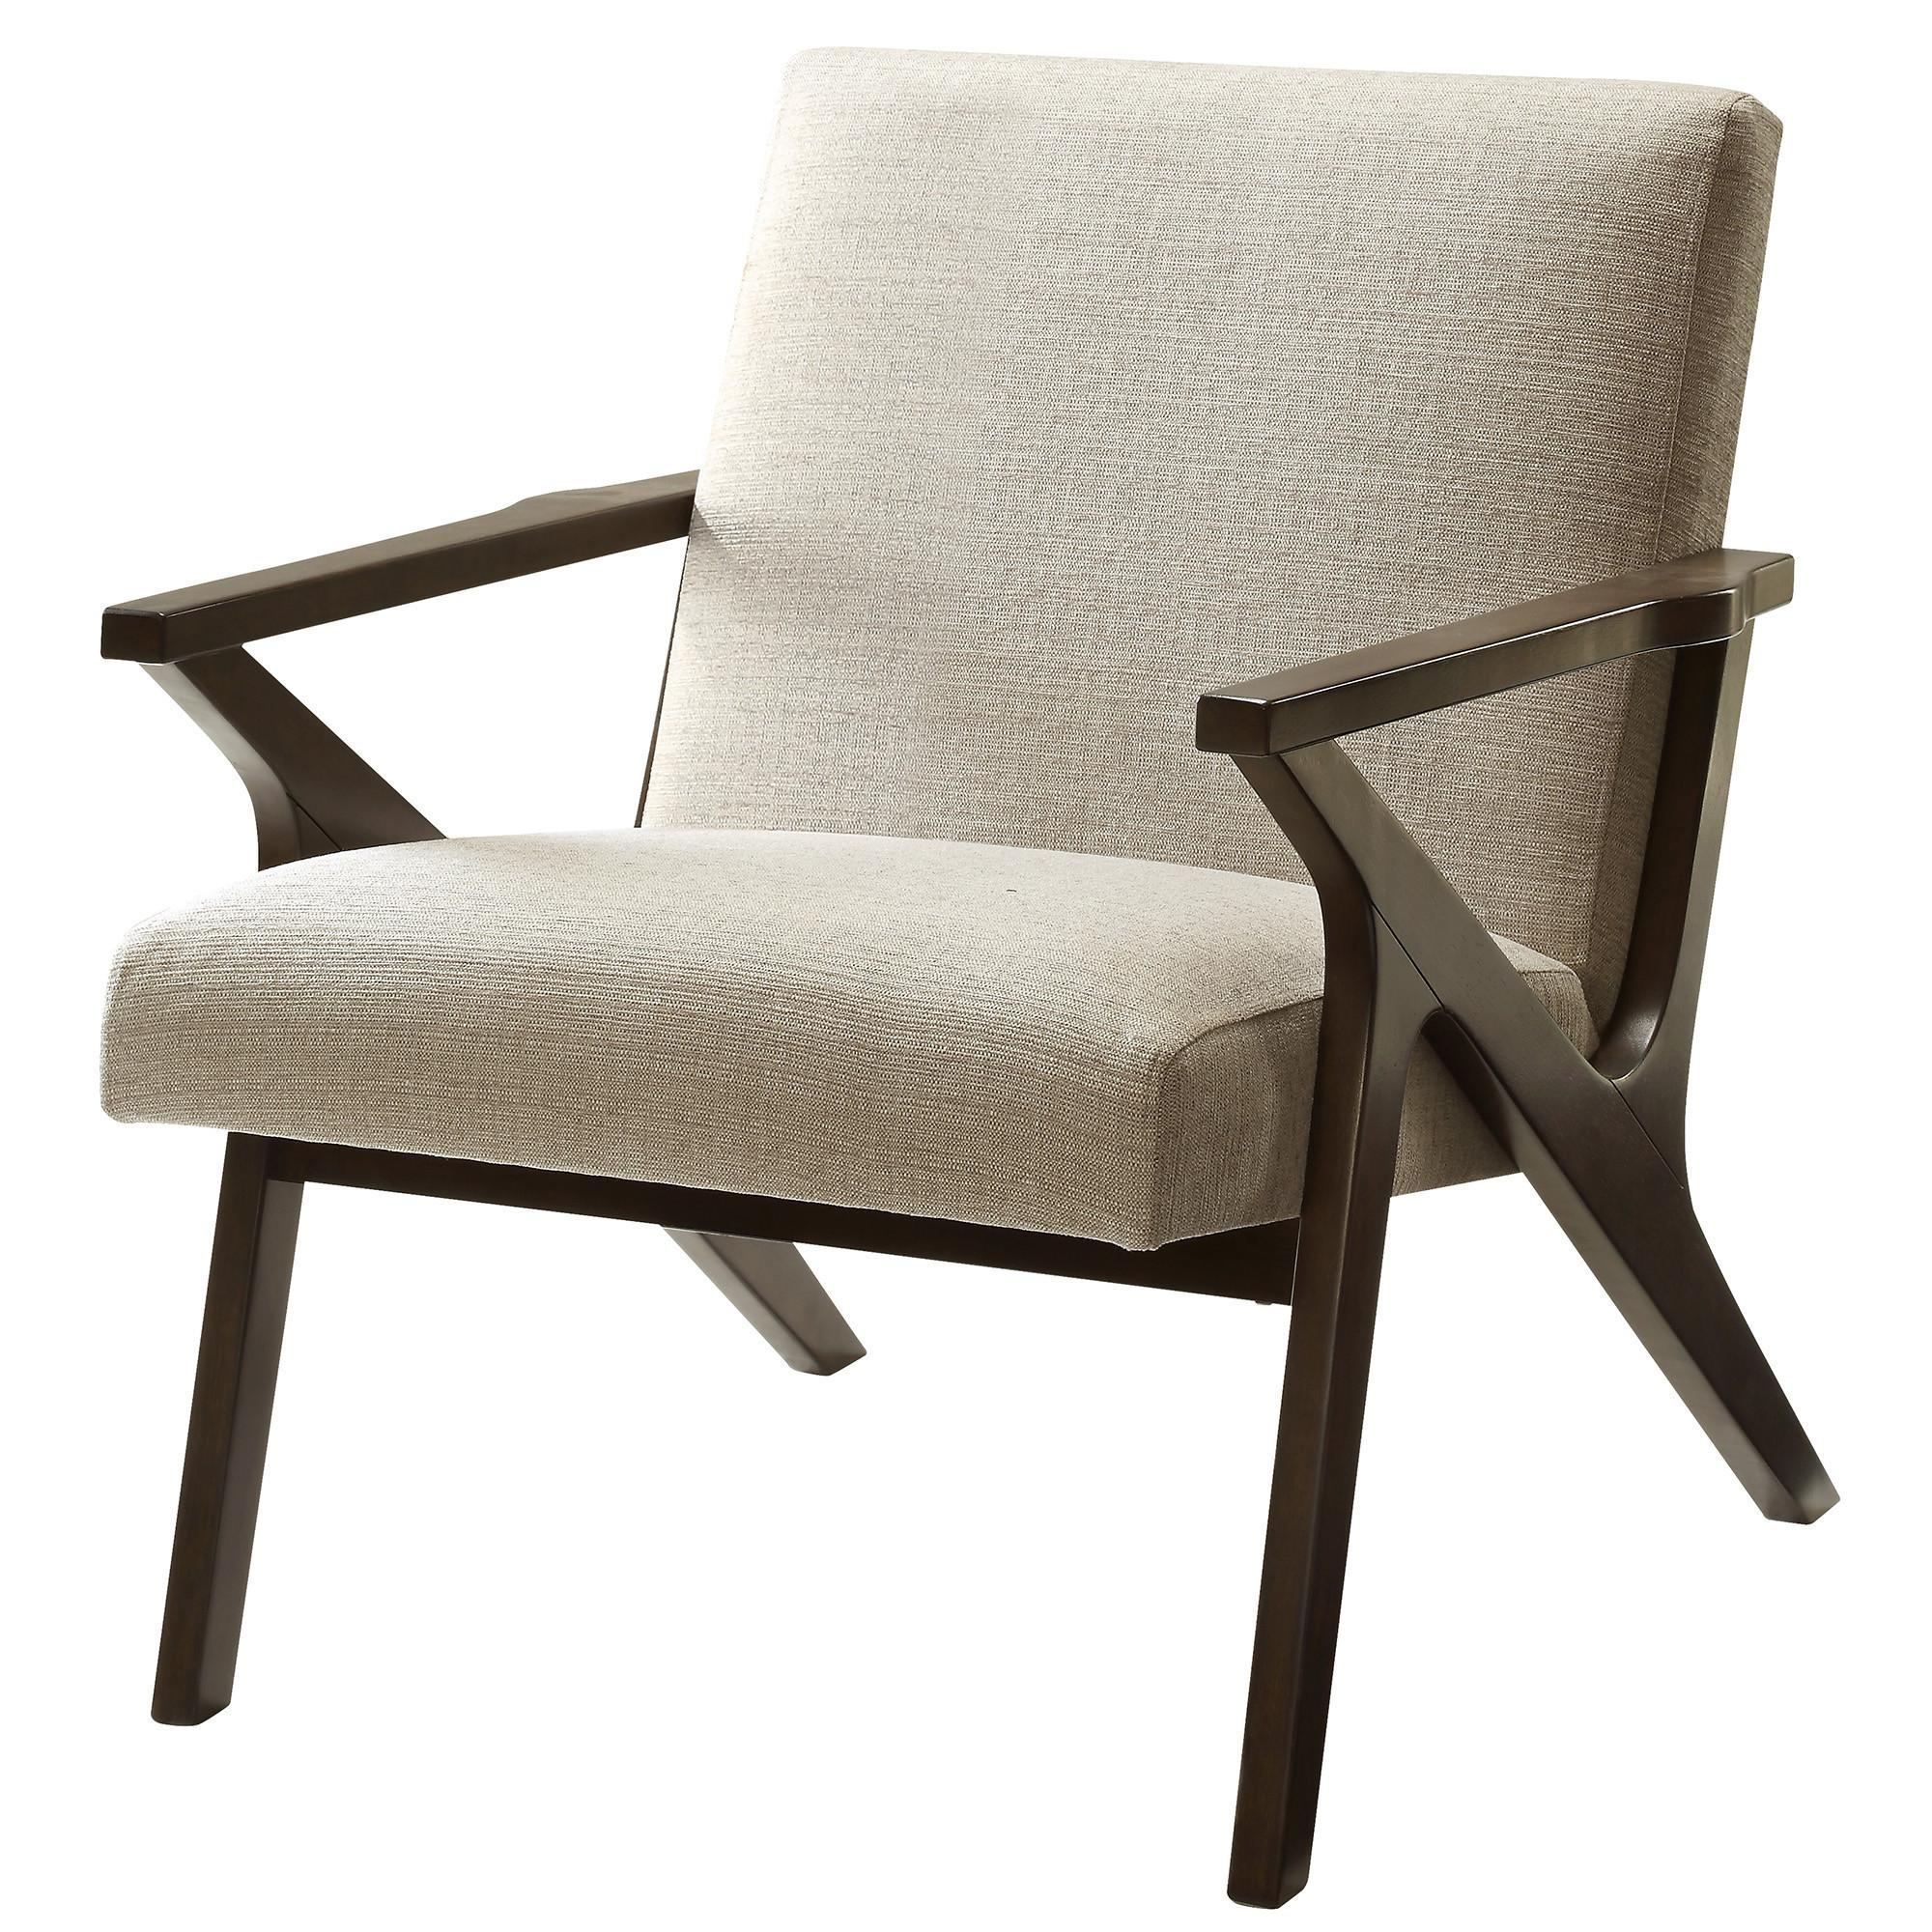 Nspire Upholstered Accent Arm Chair